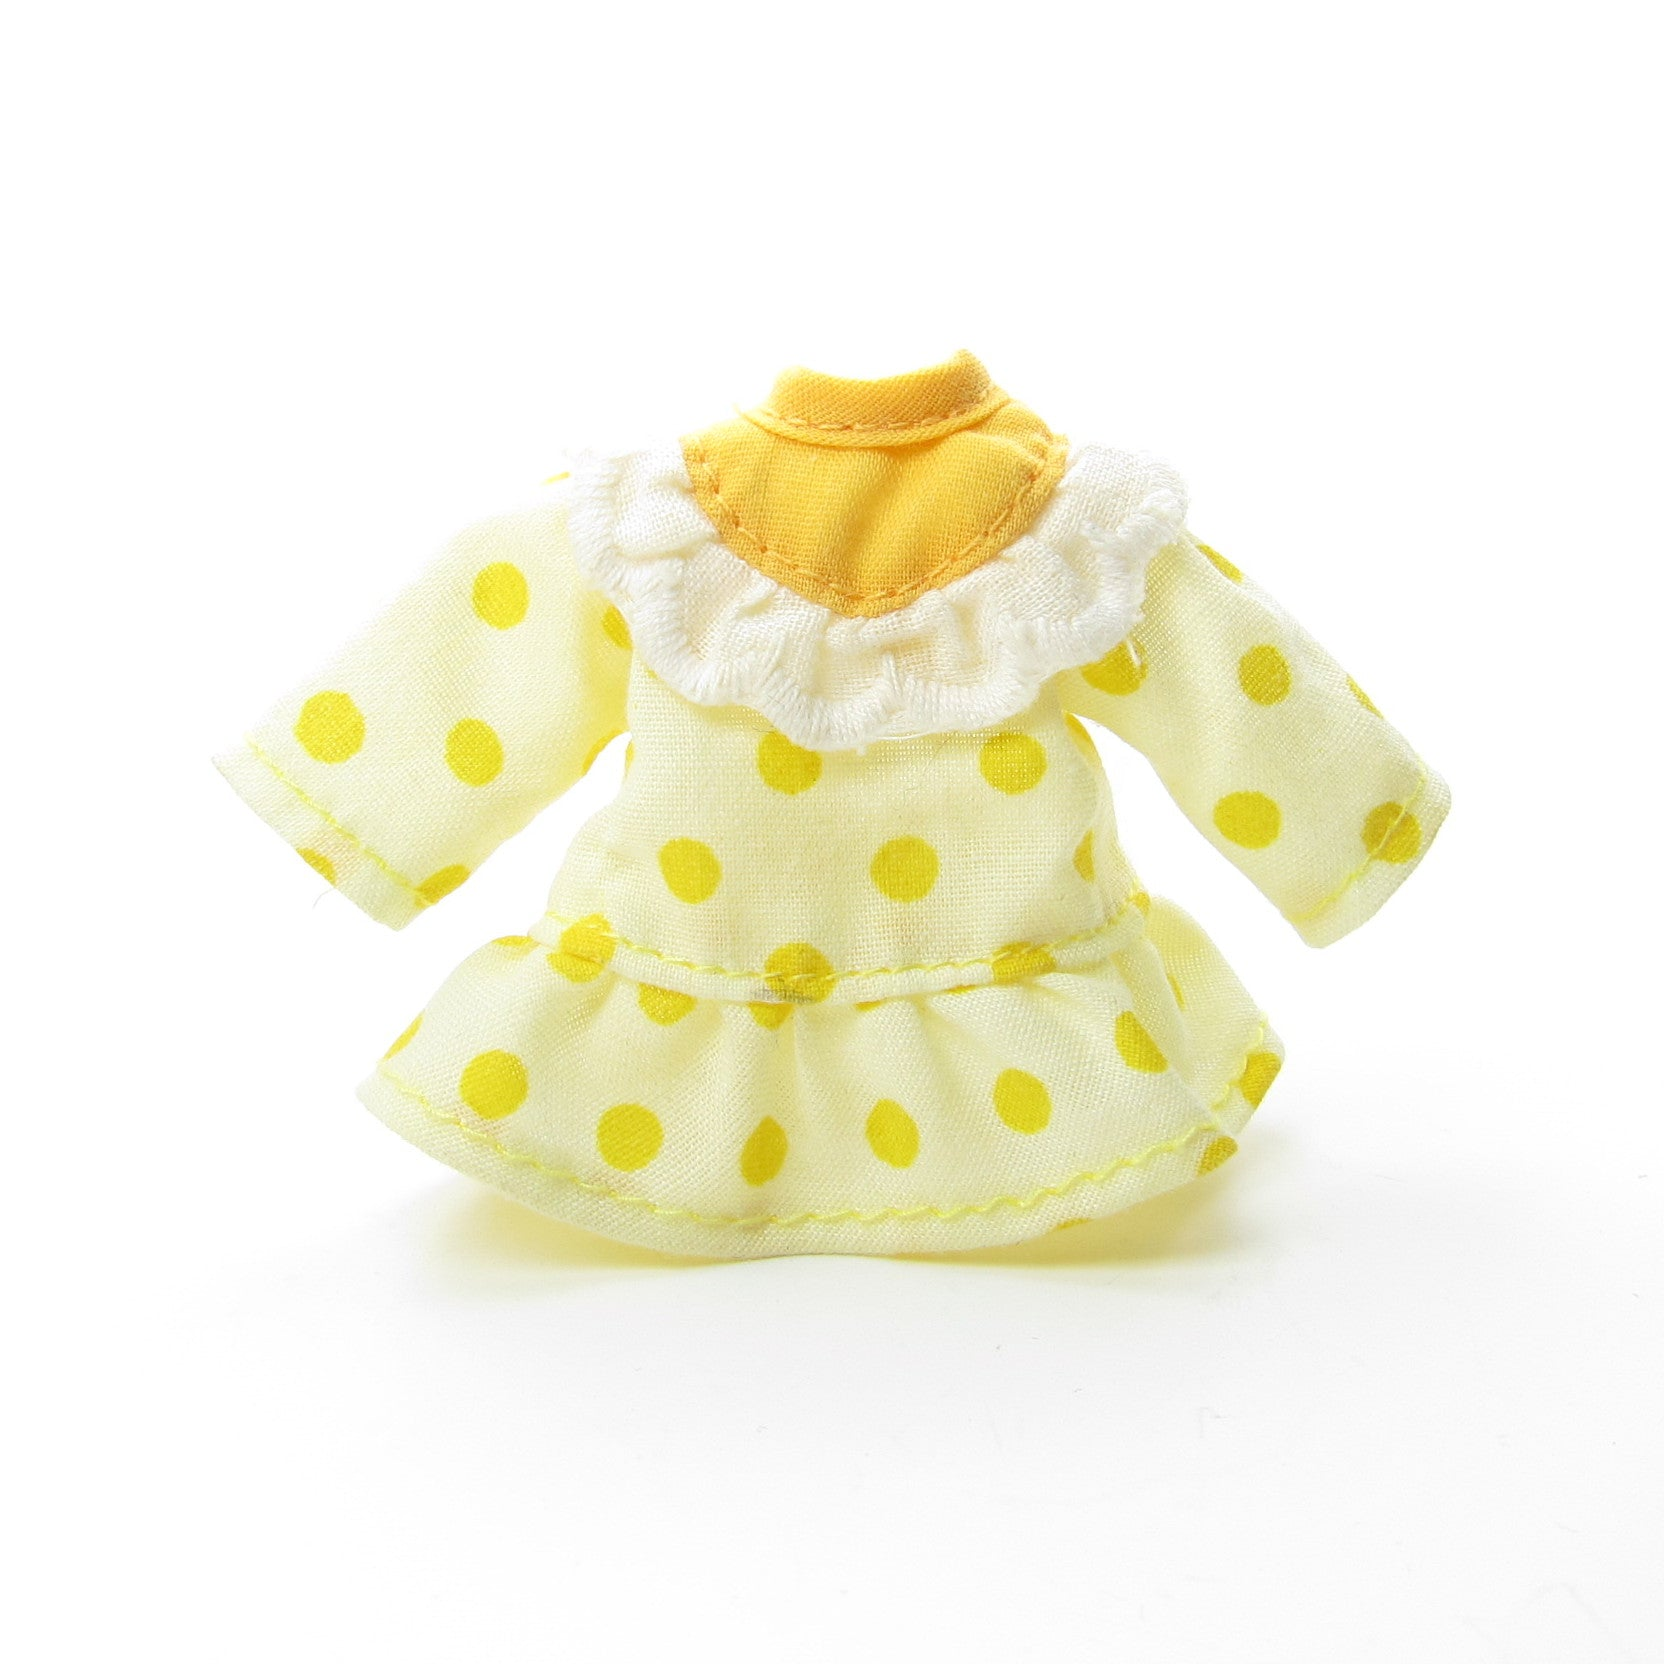 Lemon Meringue doll dress for Strawberry Shortcake doll